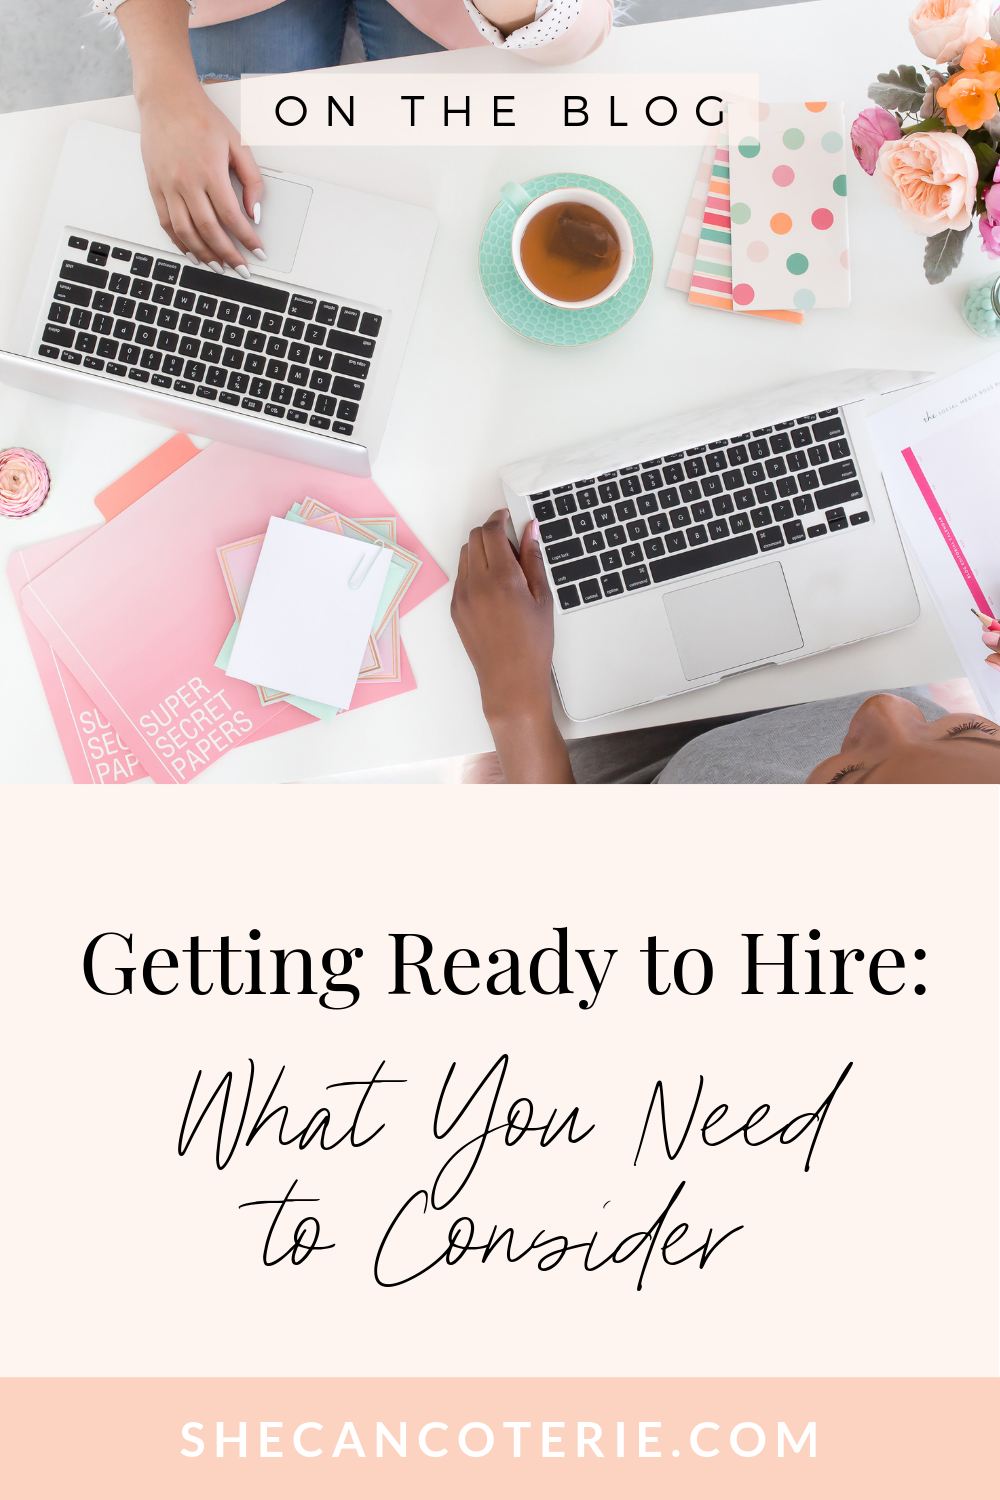 Getting Ready to Hire | SheCanCoterie.com